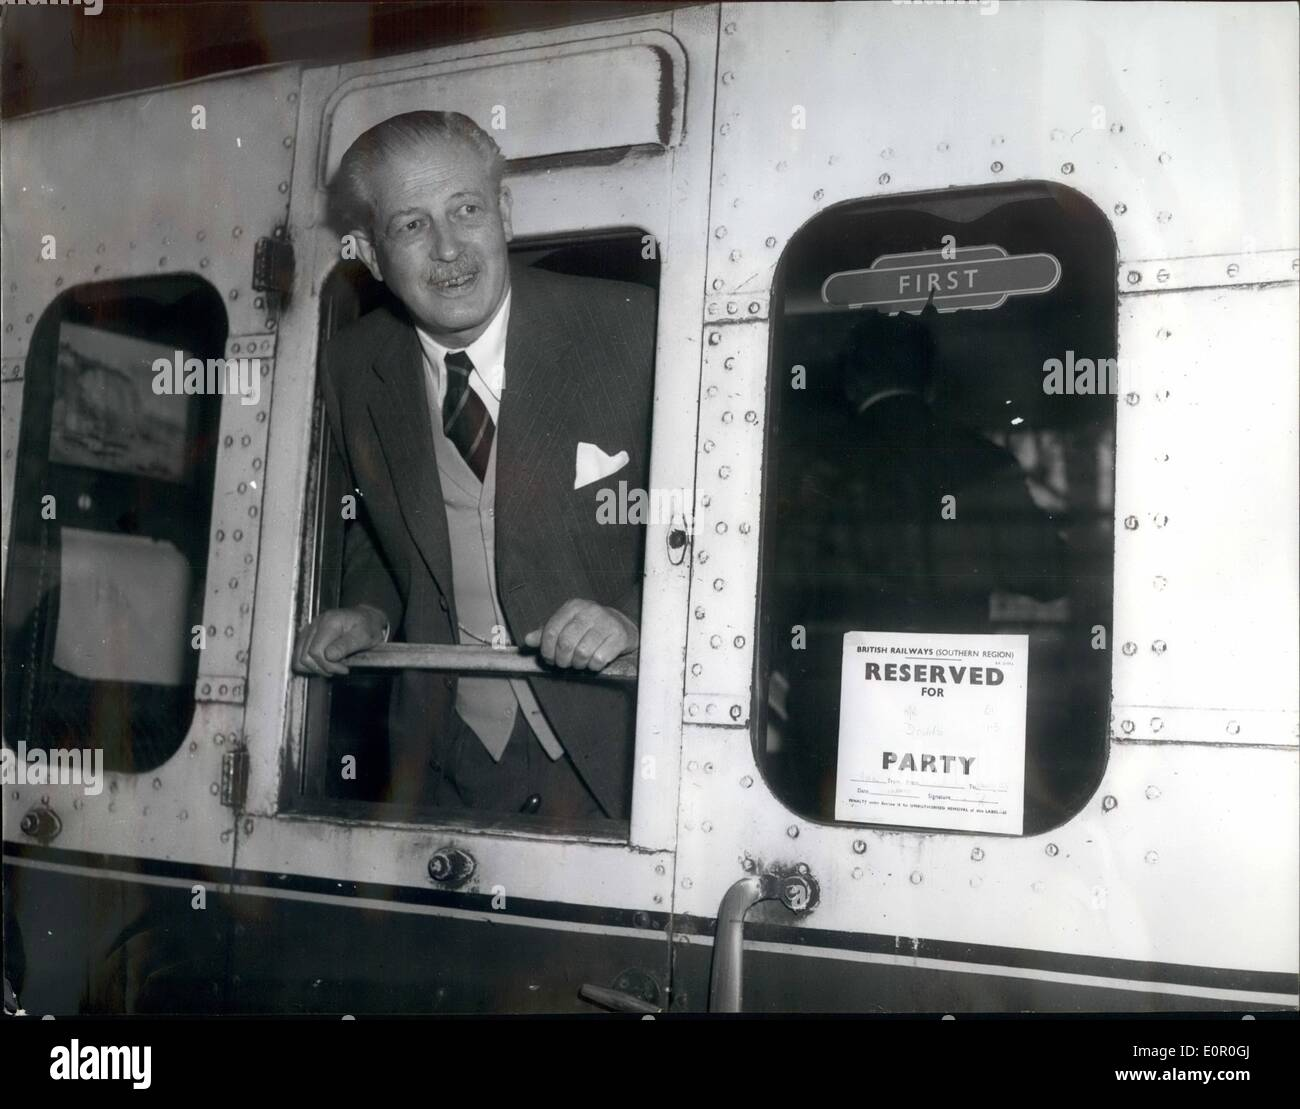 Jun. 06, 1957 - The Prime Minister Visits Sir Anthony Eden. ''Mr. Downs'' At Waterloo: Mr. Harold Macmillan the Prime Minister travelled by train to Salisbury this morning - for his visit to Sir Anthony Eden, who is resting at his country home. Photo shows Mr. Macmillan in his carriage - which is reserved for ''Mr. Downs' (Downing Street), when he left Waterloo Station for Salisbury this morning. - Stock Image